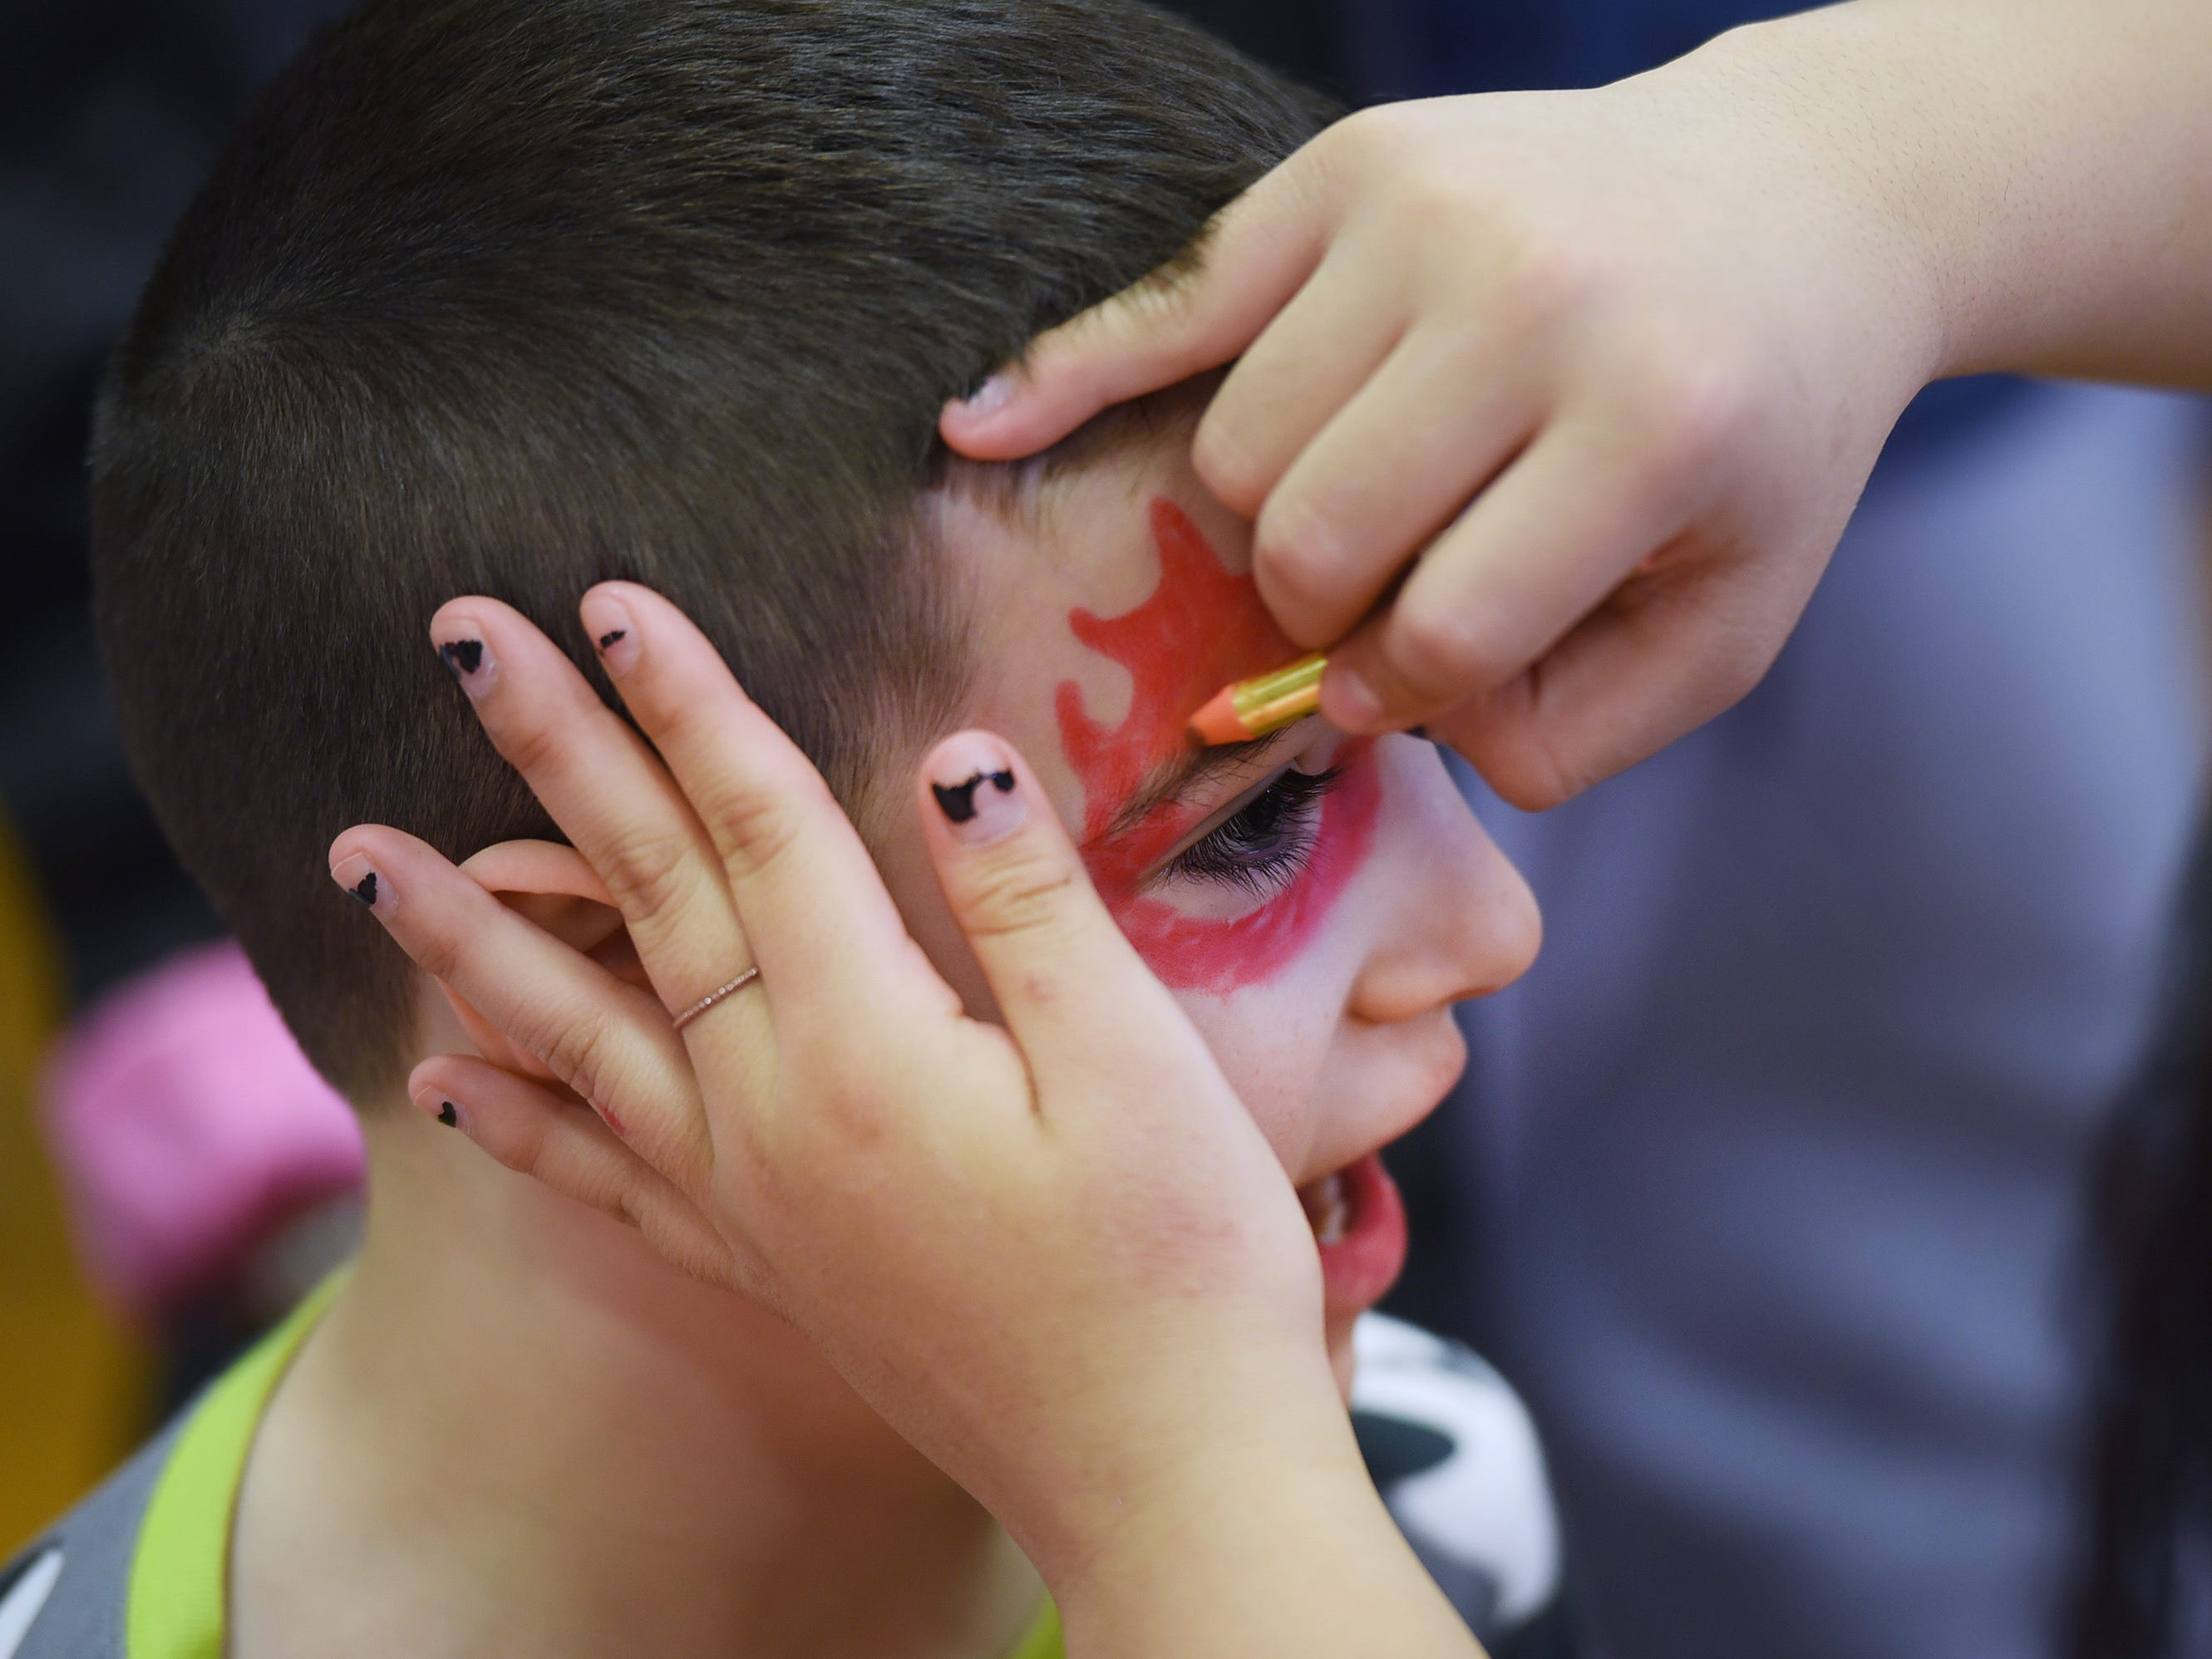 Luke Scano (age 7) of Rutherford has his face painted during the 3rd annual March Madness Food & Fun Day to benefit the Rutherford Food Pantry hosted by the Rutherford Education Association at Washington School in Rutherford on 03/23/2019.